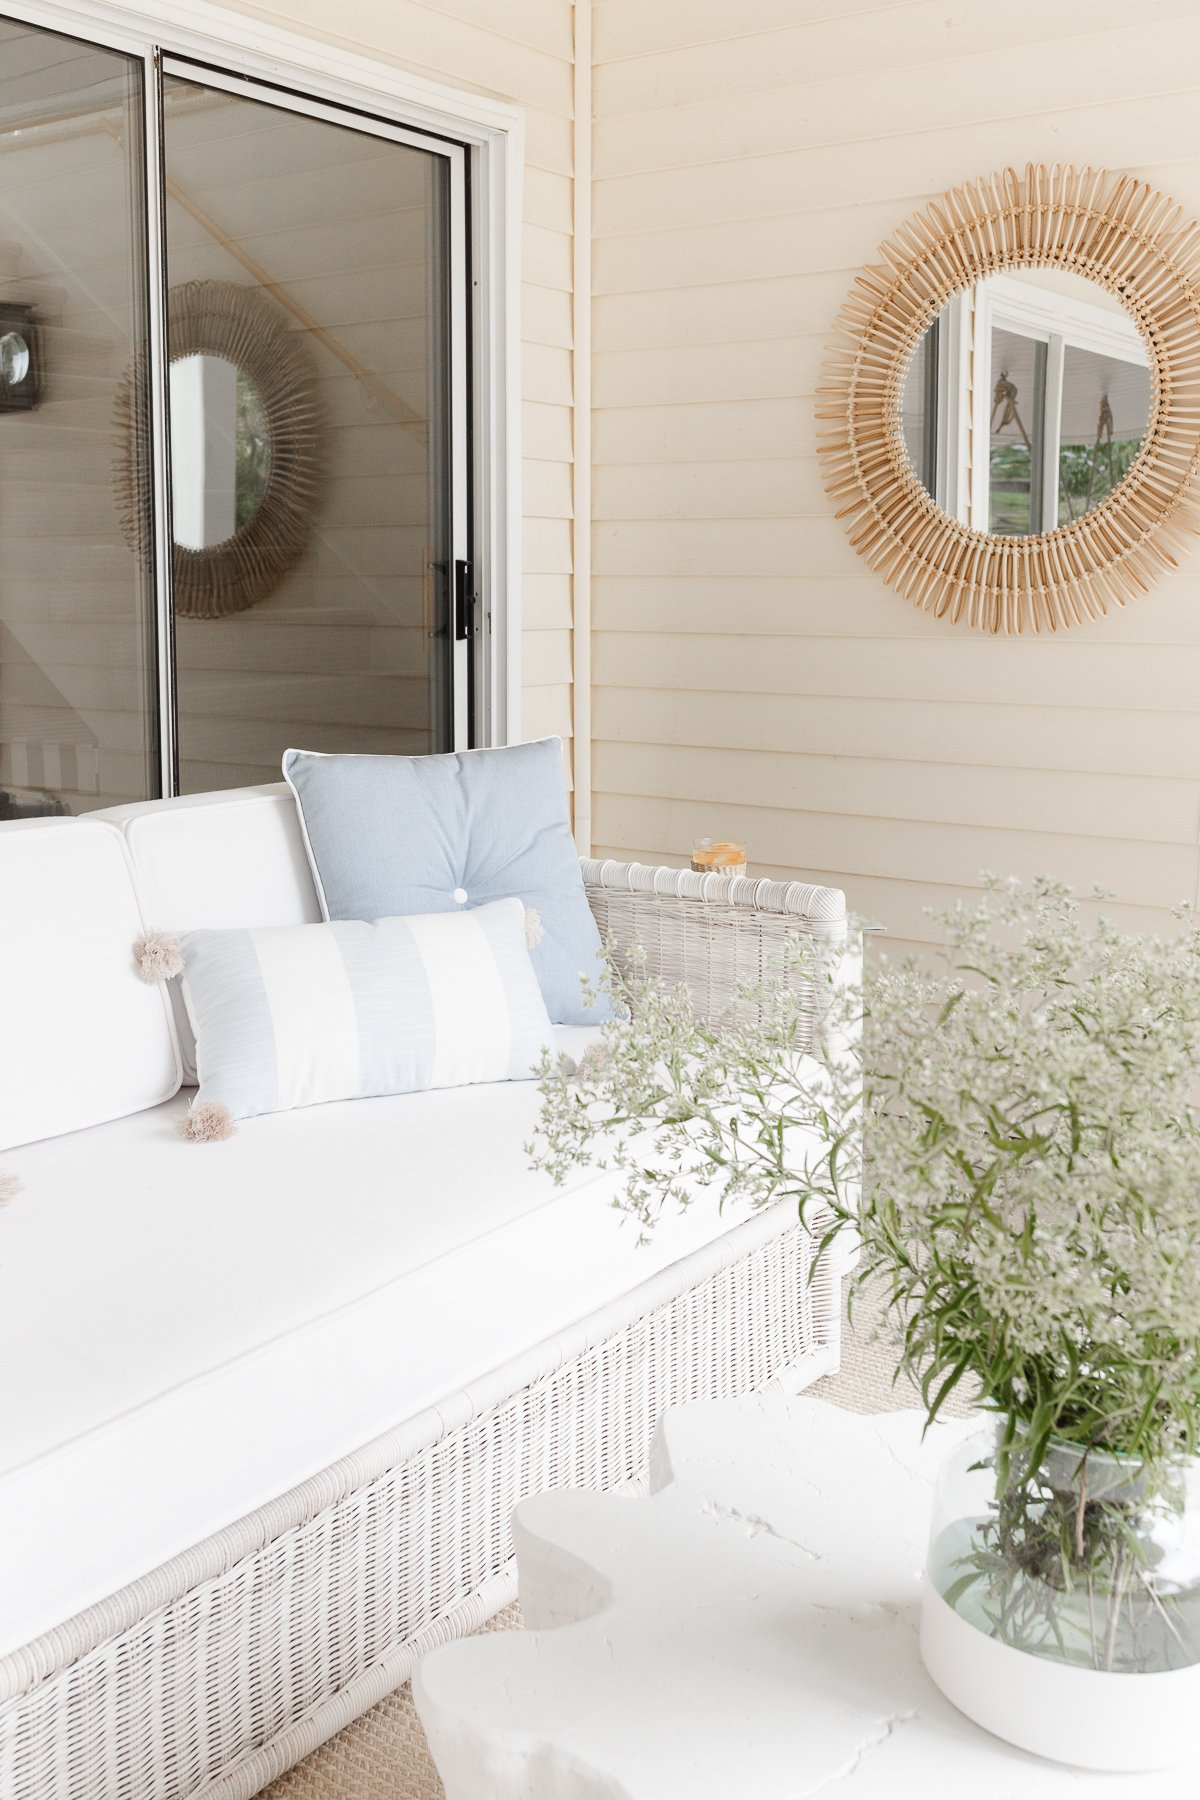 wicker sofa on covered patio with pillows flowers and mirror